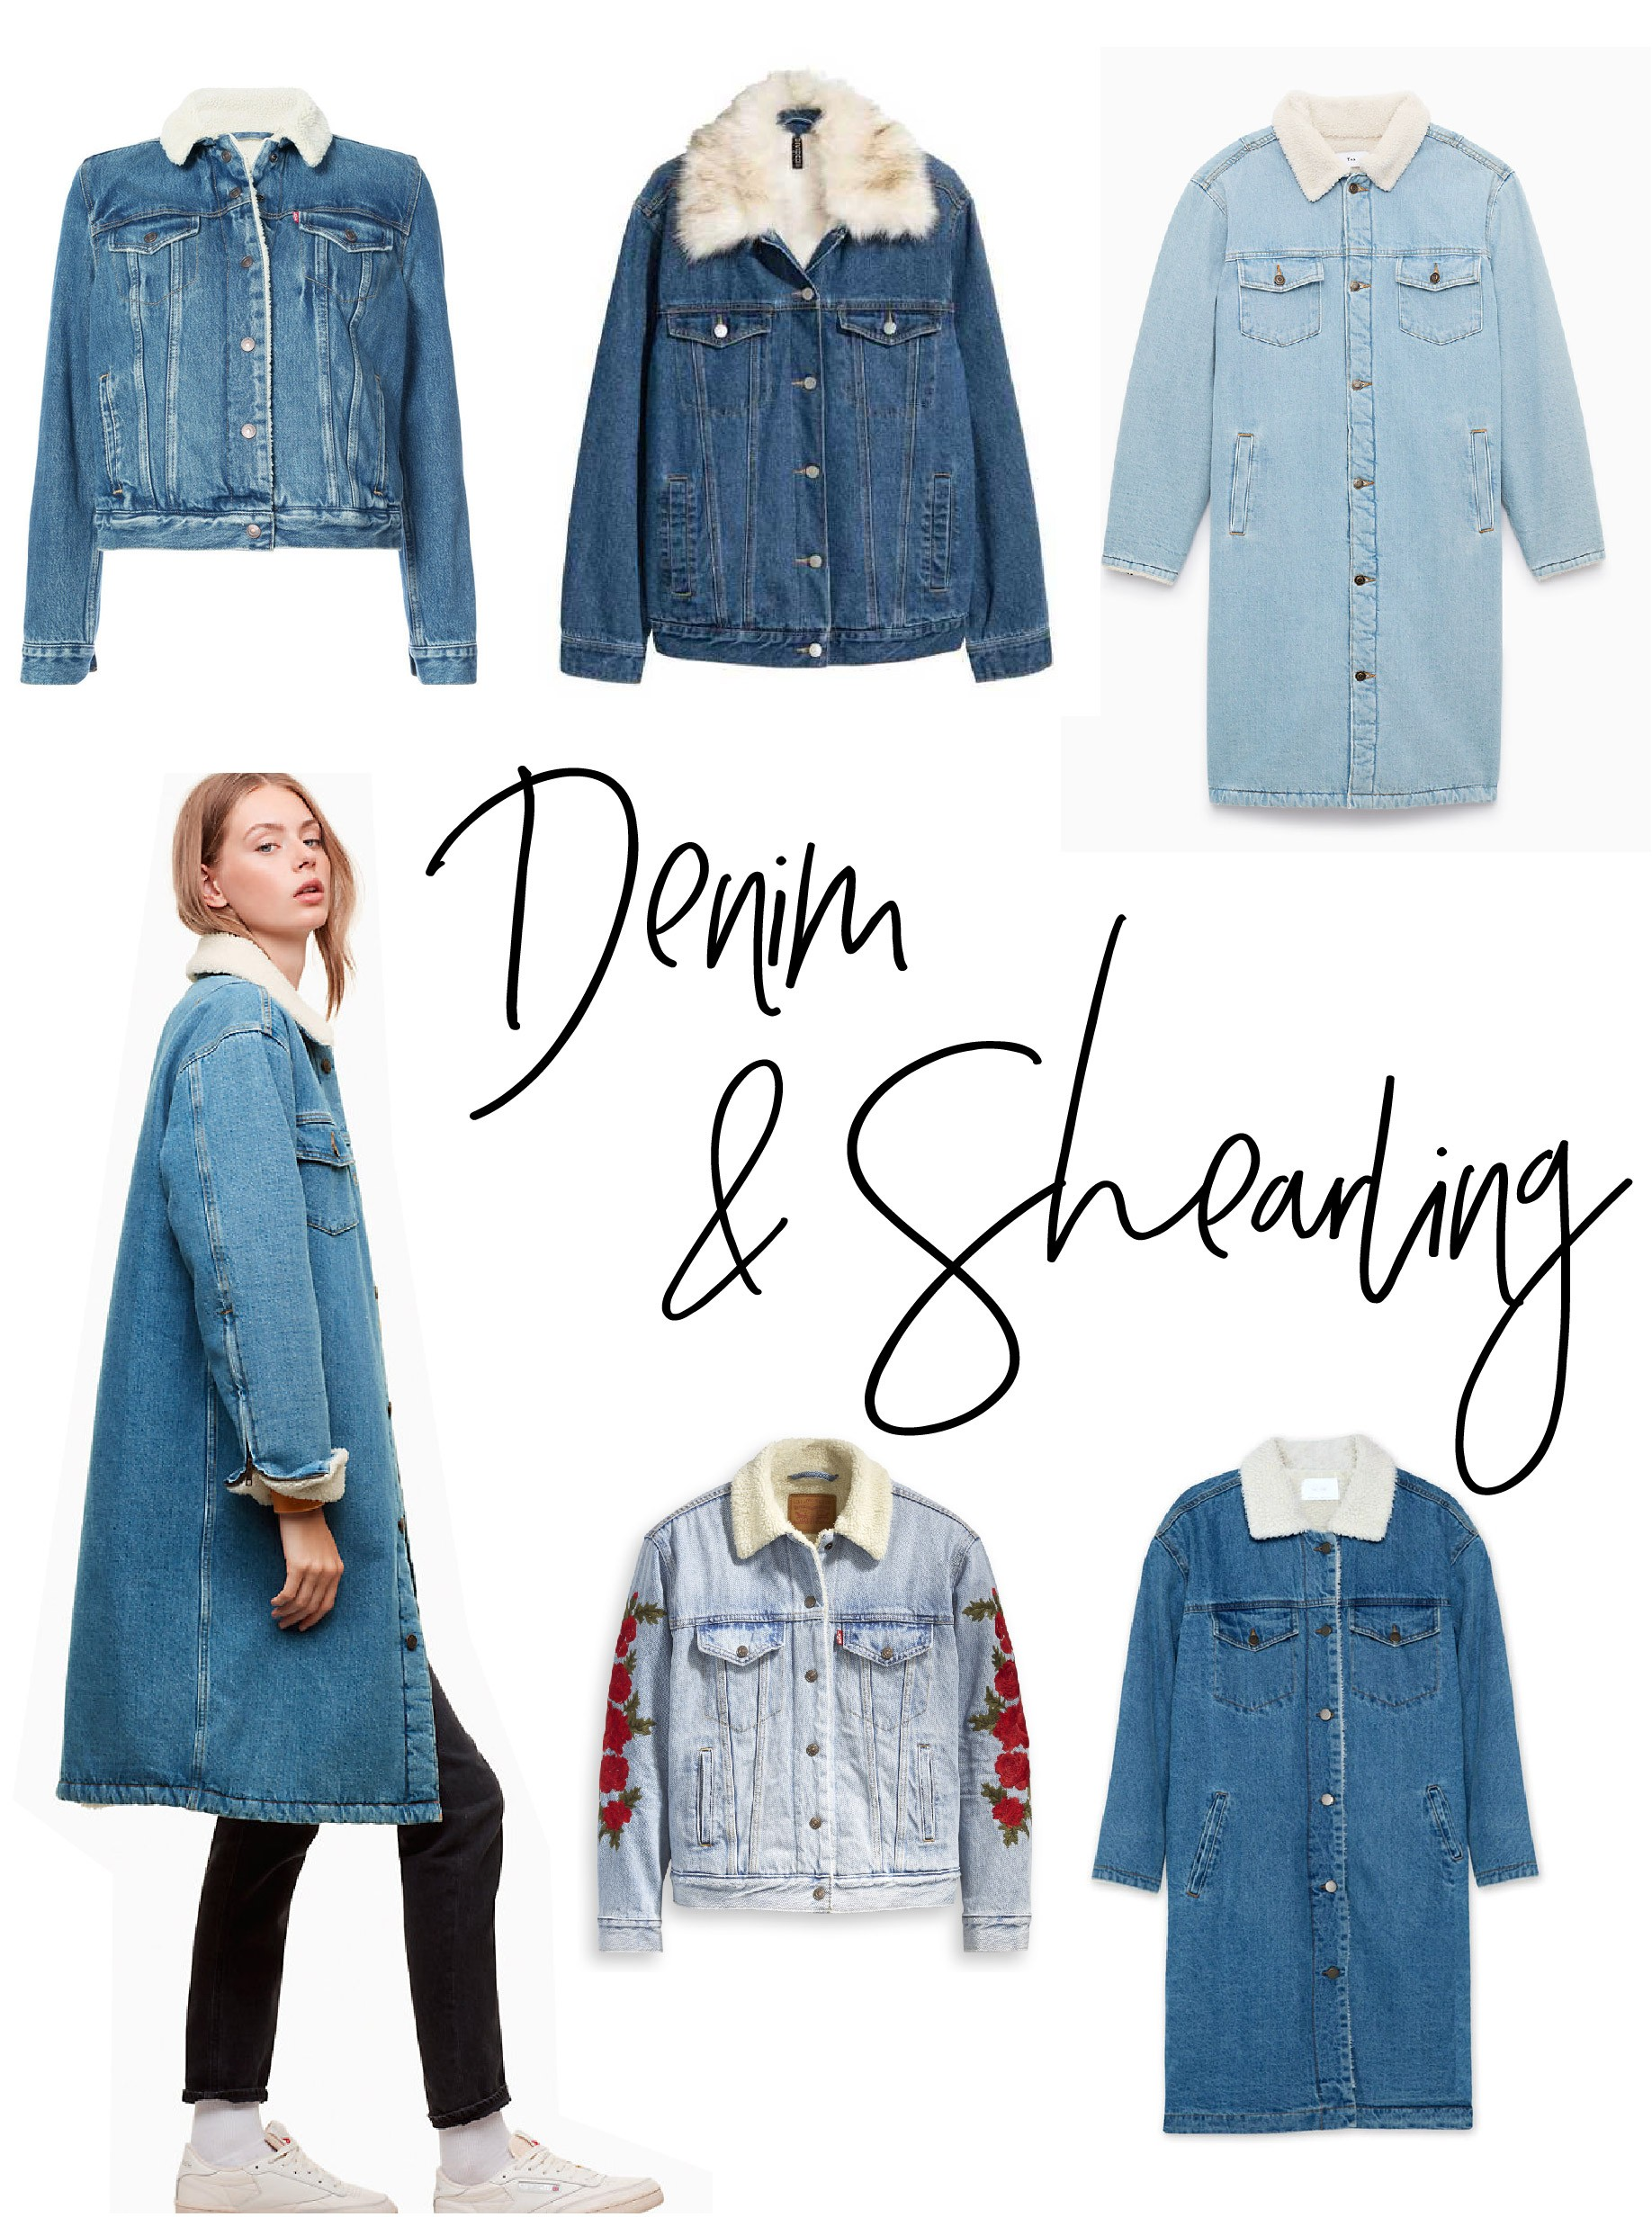 886ce5b8261 12 Amazing Denim Shearling Jackets